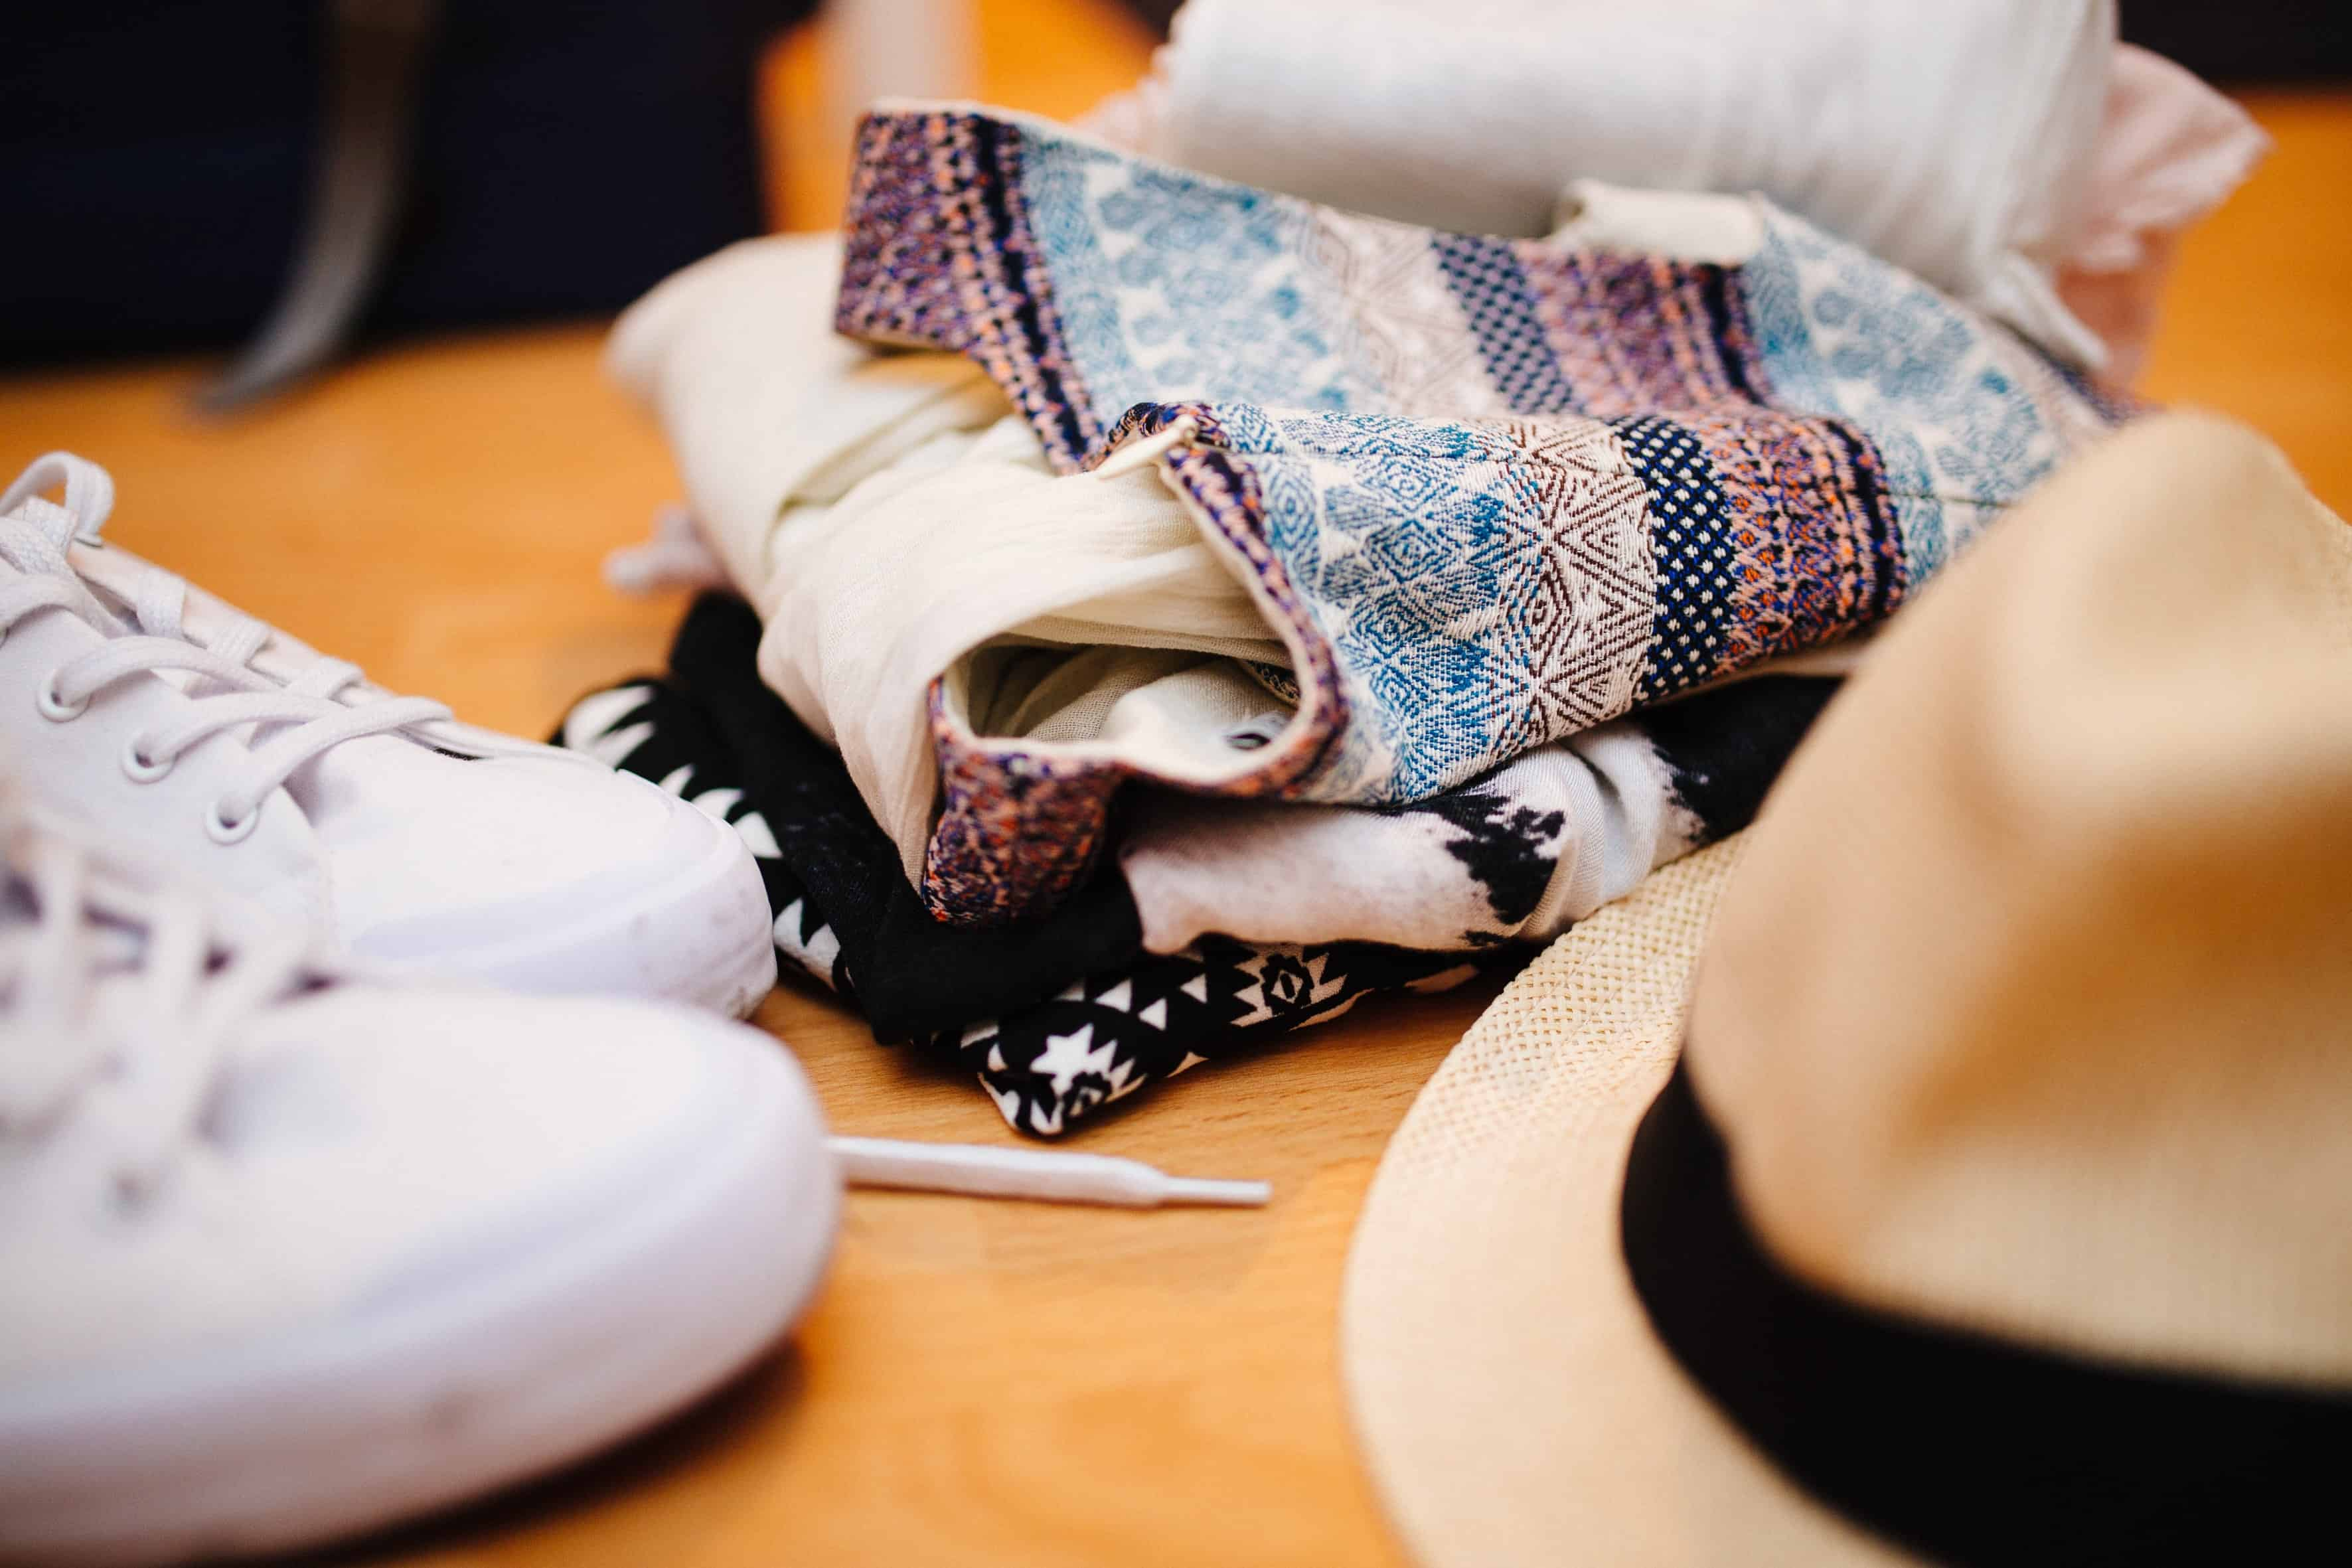 Guest Post – 5 Tips for cashing in on your old clothes and clutter with eBay